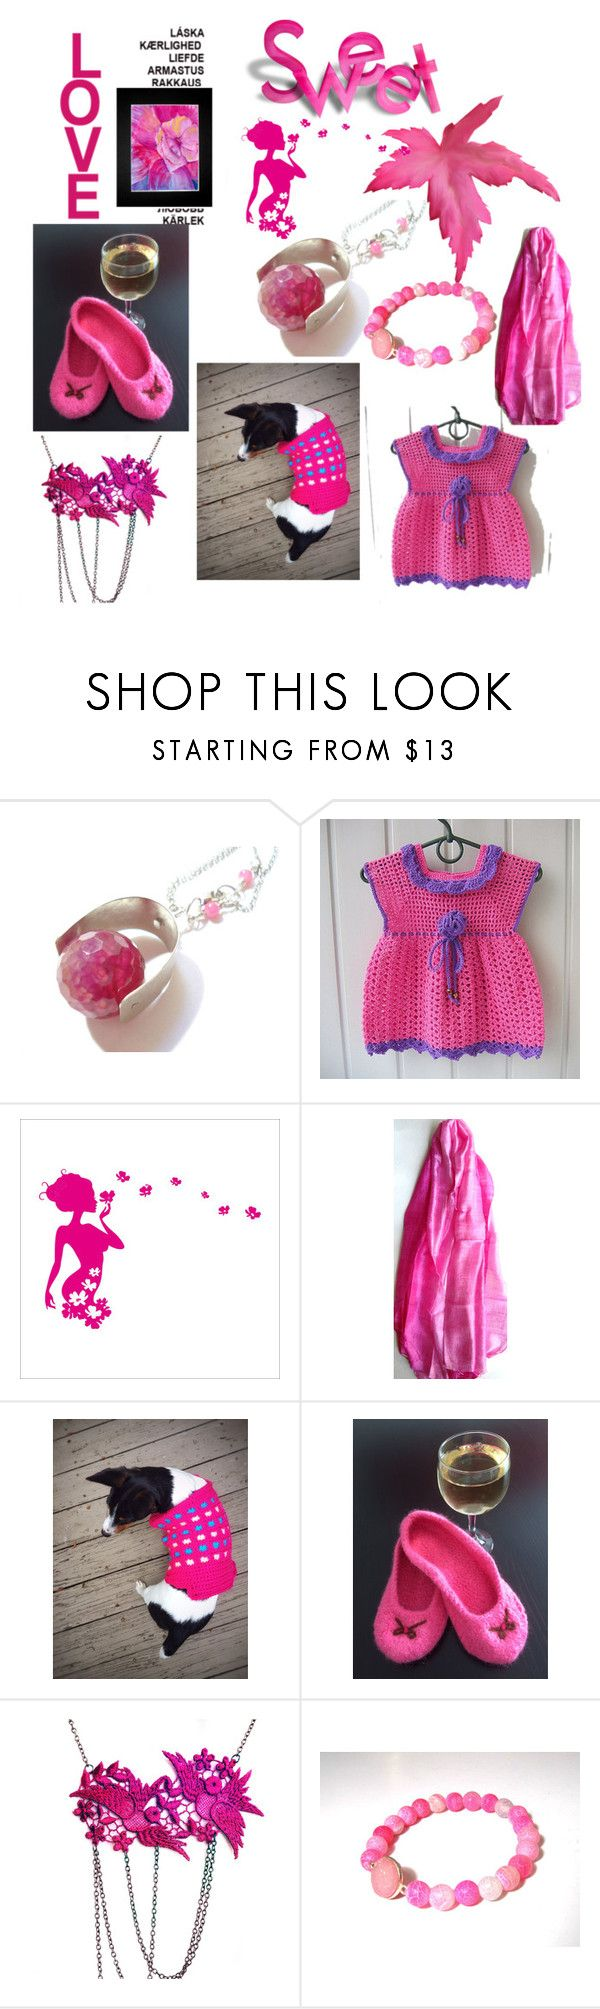 Sweet Fuchsia by anna-recycle on Polyvore featuring Scialle, Hostess, ANNA, modern, rustic and vintage